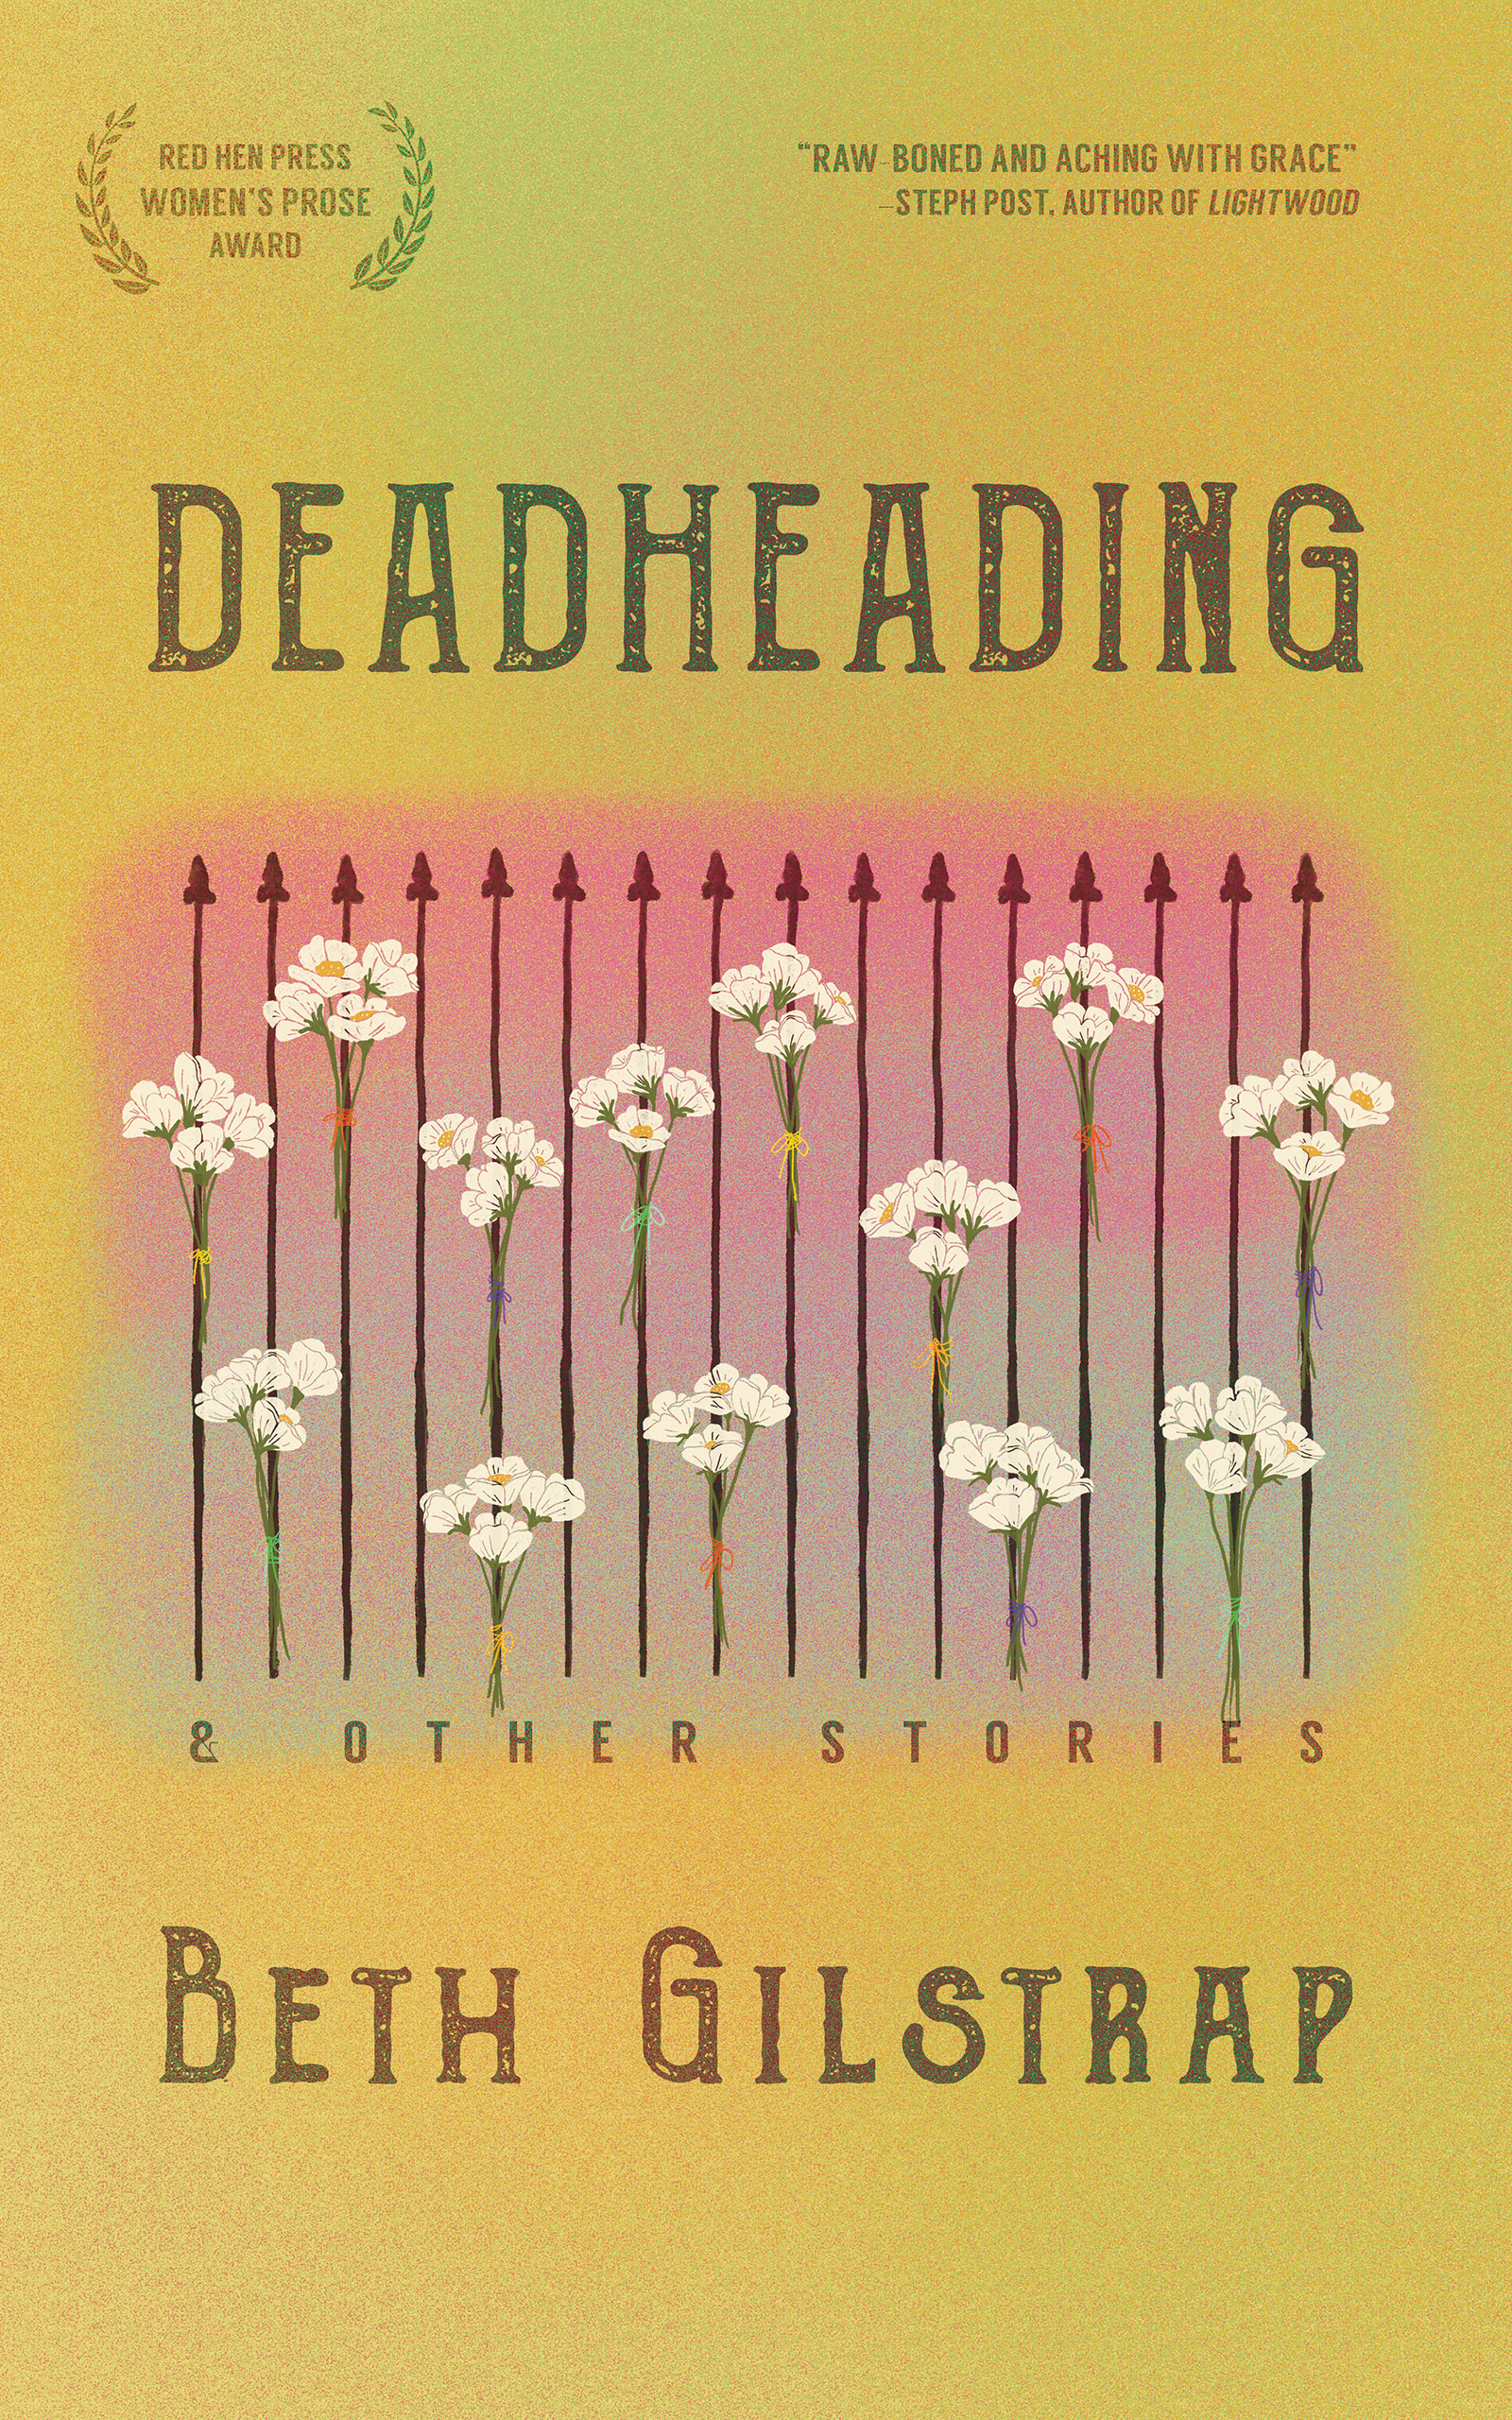 A yellow cover with white flowers at the center and grey text that reads Deadheading and other stories by Beth Gilstrap.